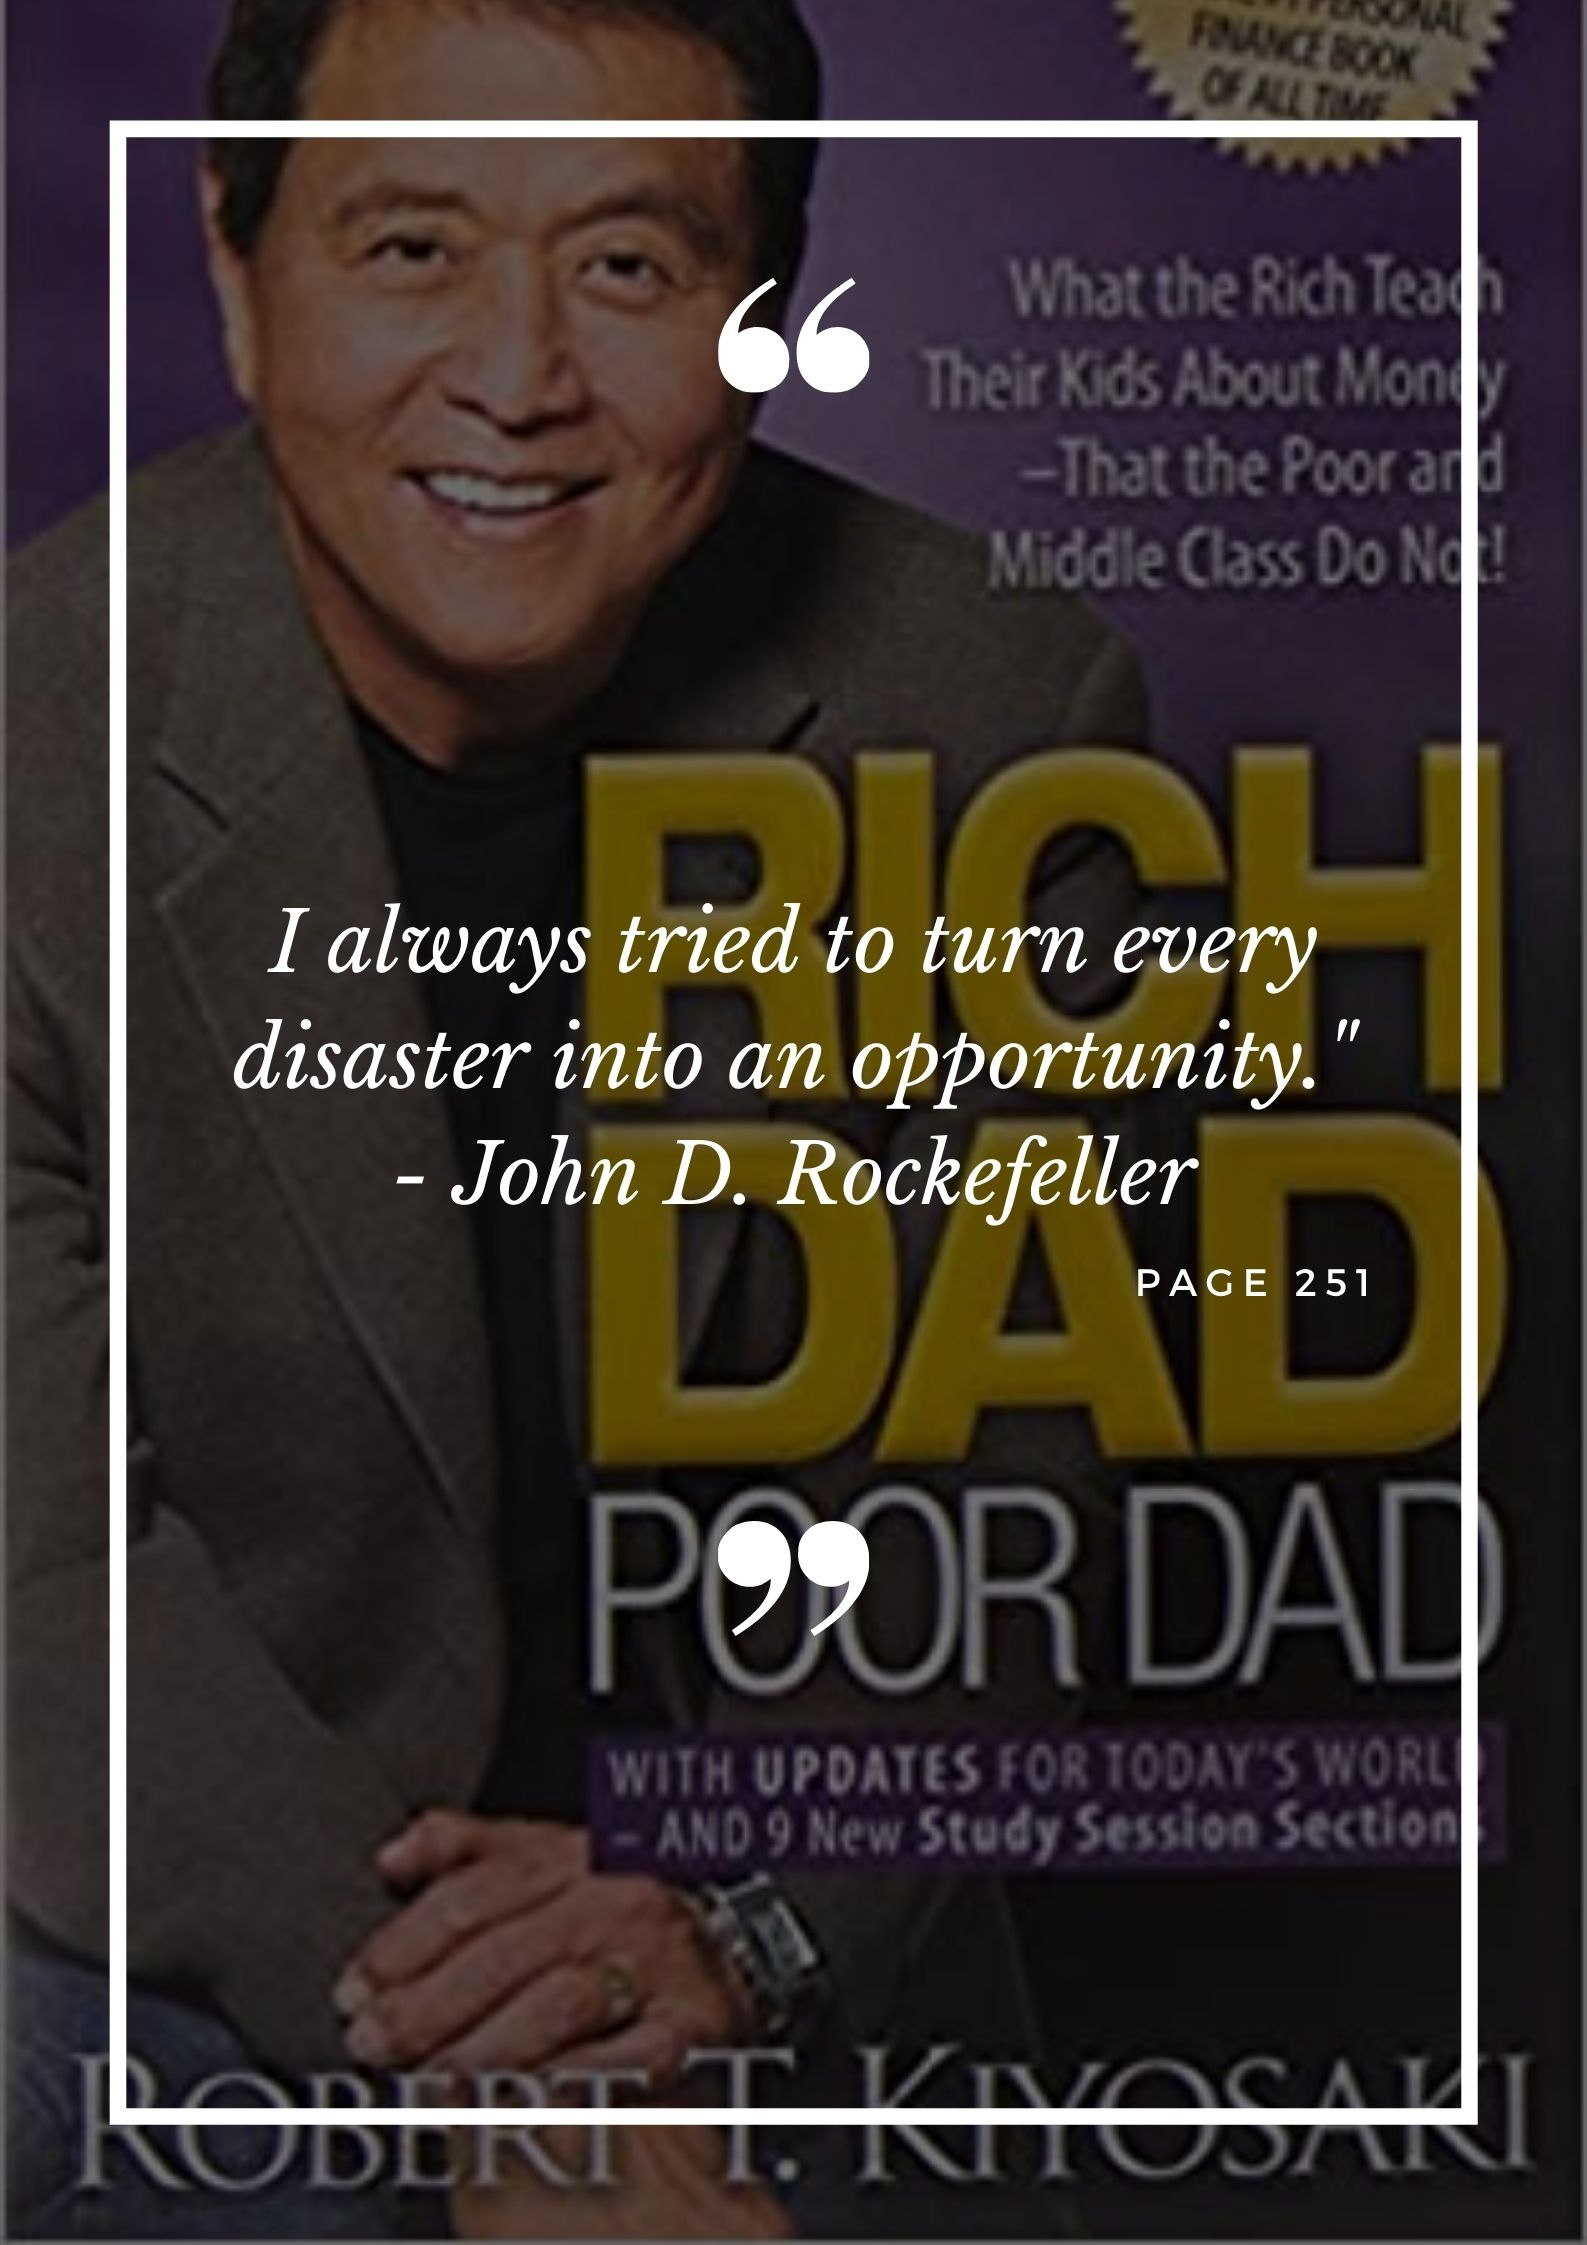 Rich Dad Poor Dad by Robert T. Kiyosaki - Book Quotes